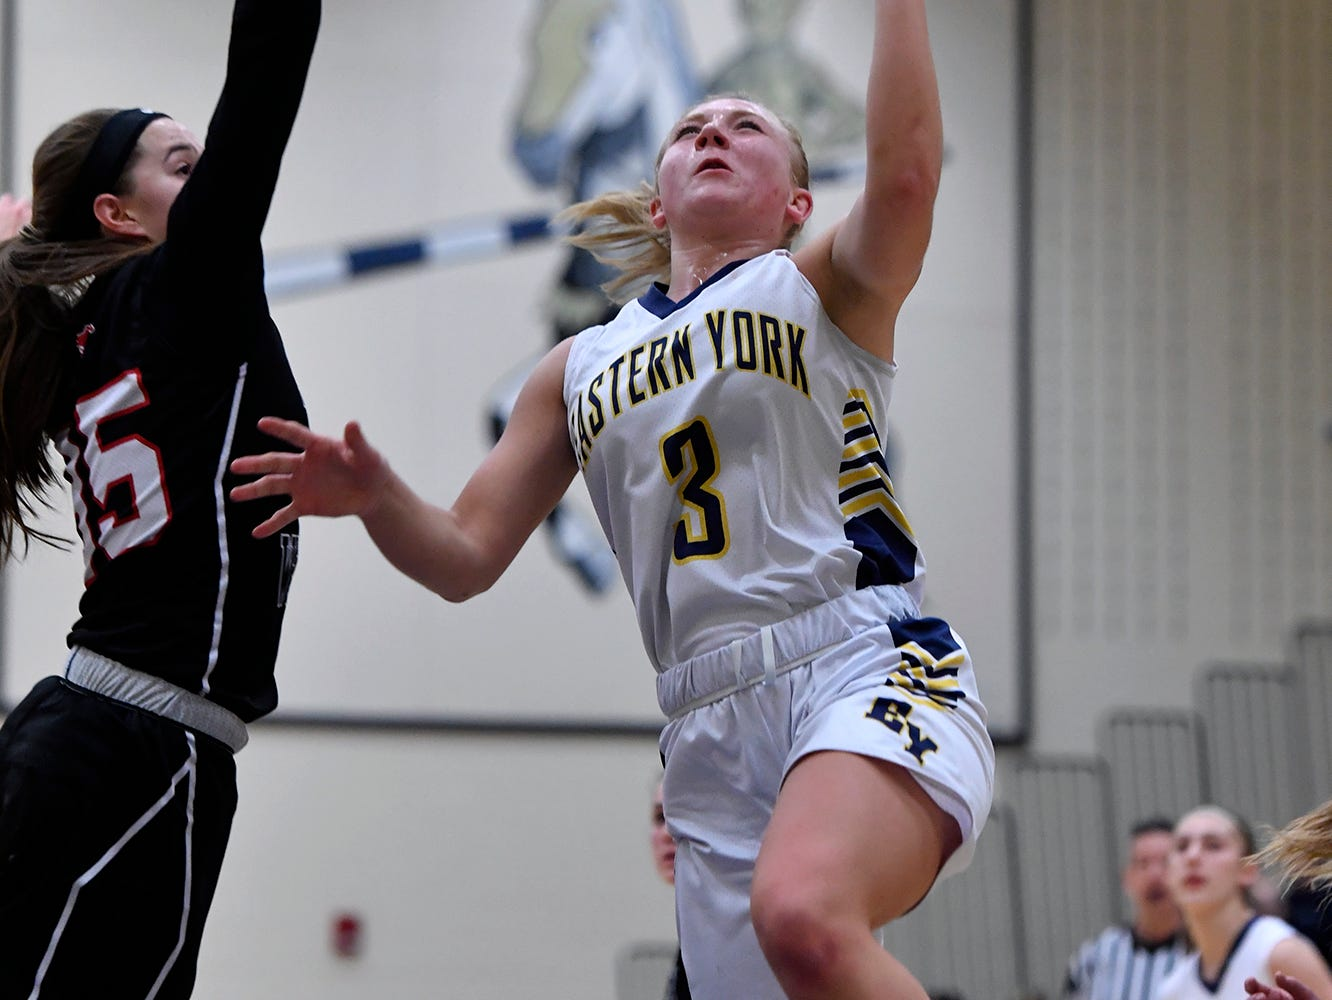 South Western's Taylor Geiman tries to block Cass Arnold of Eastern York as she drives to the hoop, Monday, January 7, 2019. John A. Pavoncello photo